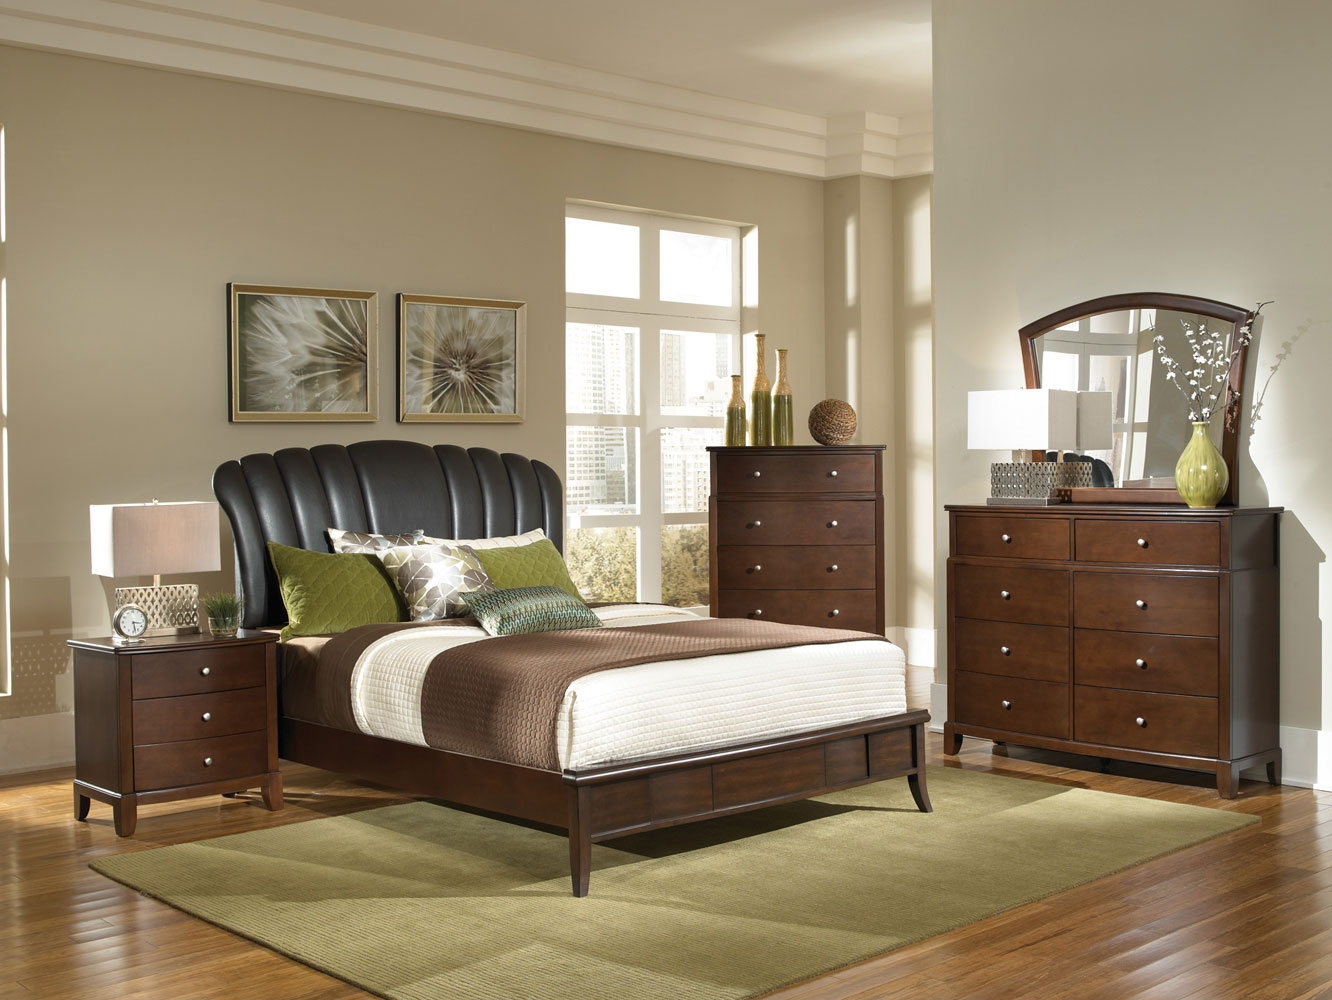 Coaster Addley Upholstered Low Profile Bedroom Set - Dark Cherry